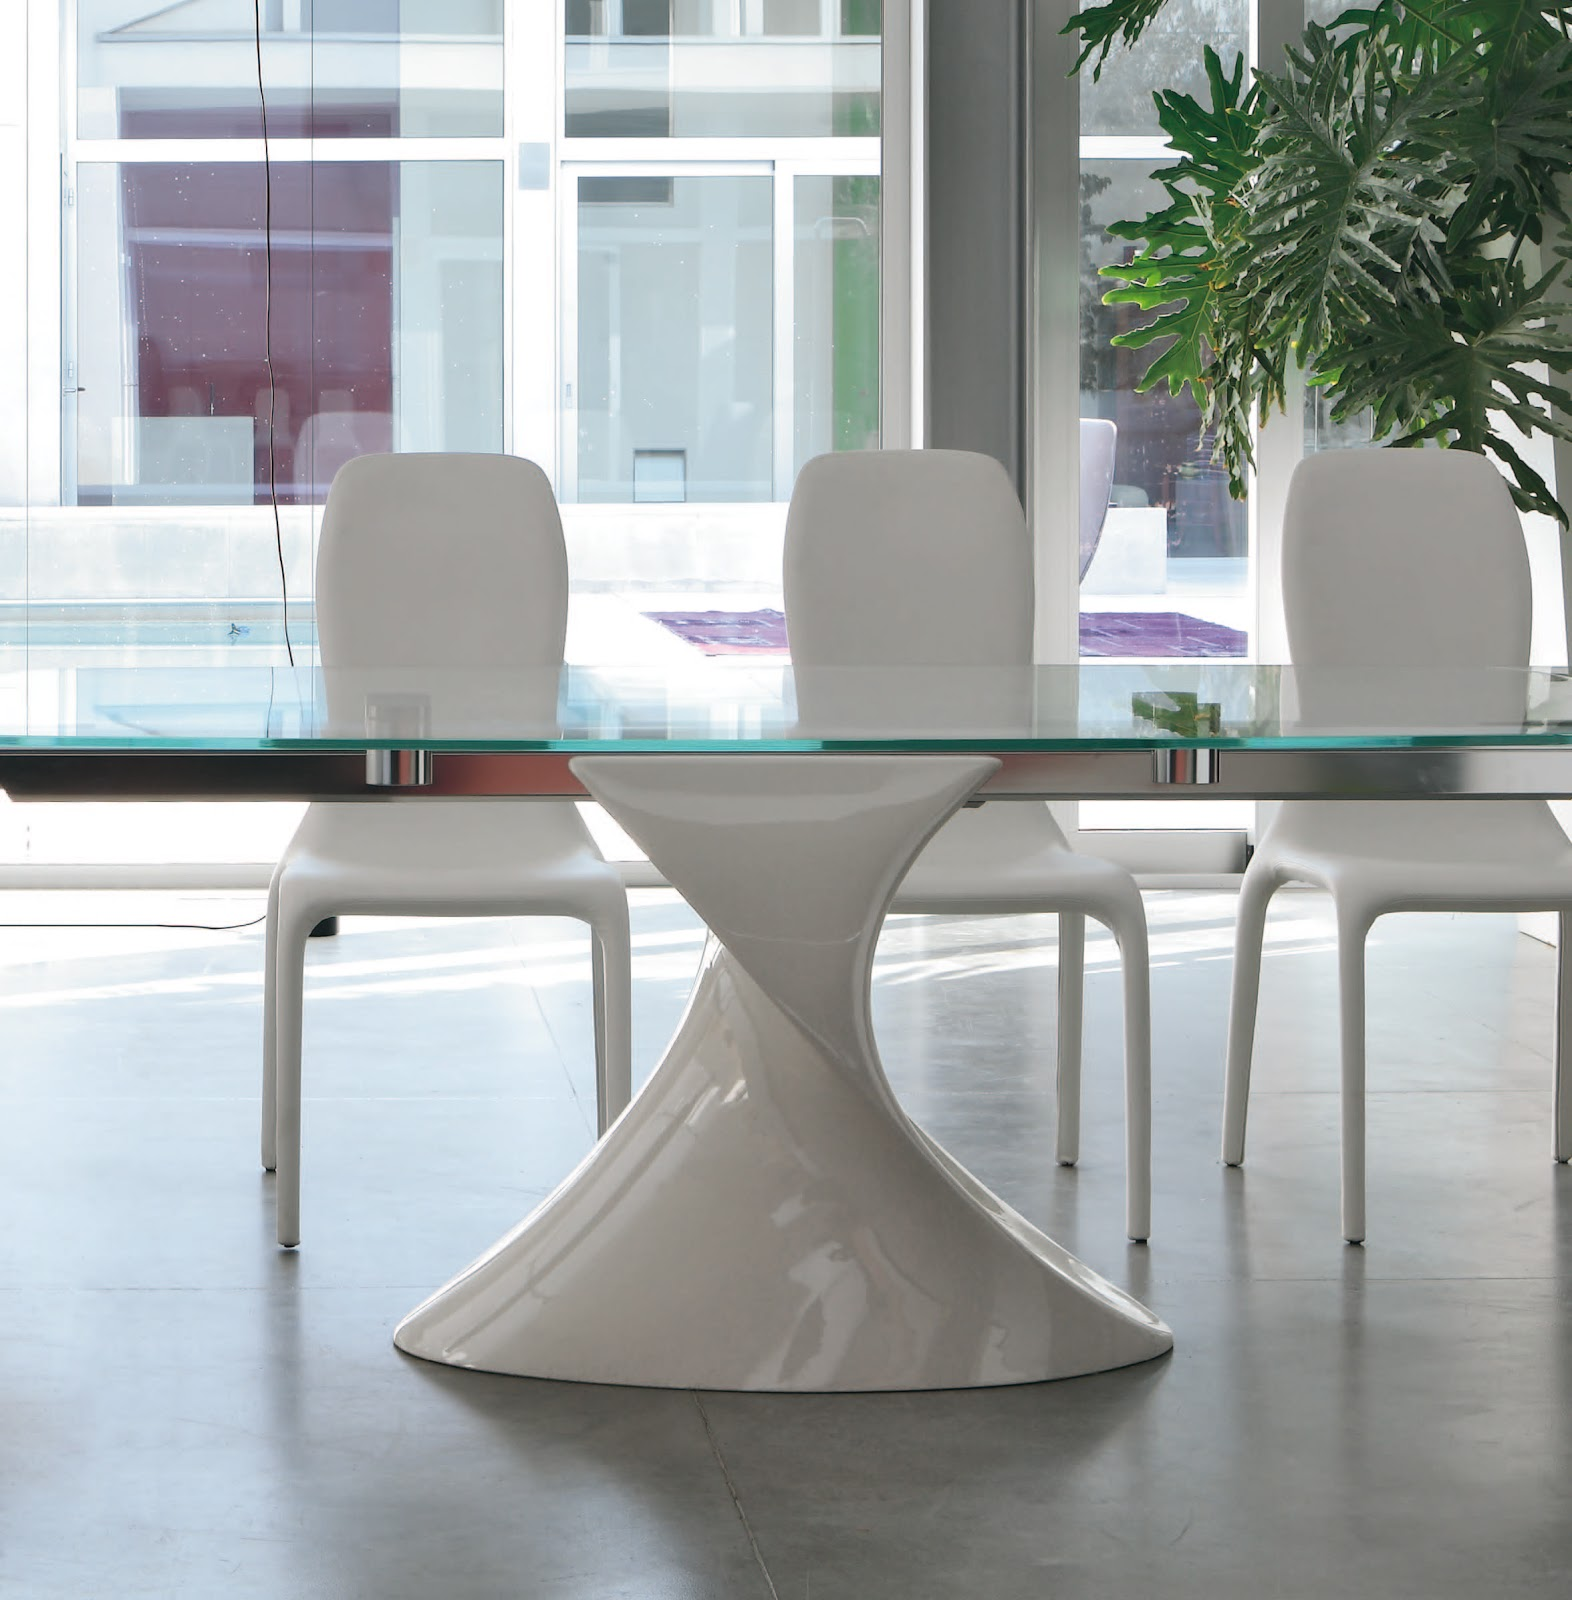 Inspiration mobilier design table avec pied design for Pied table design